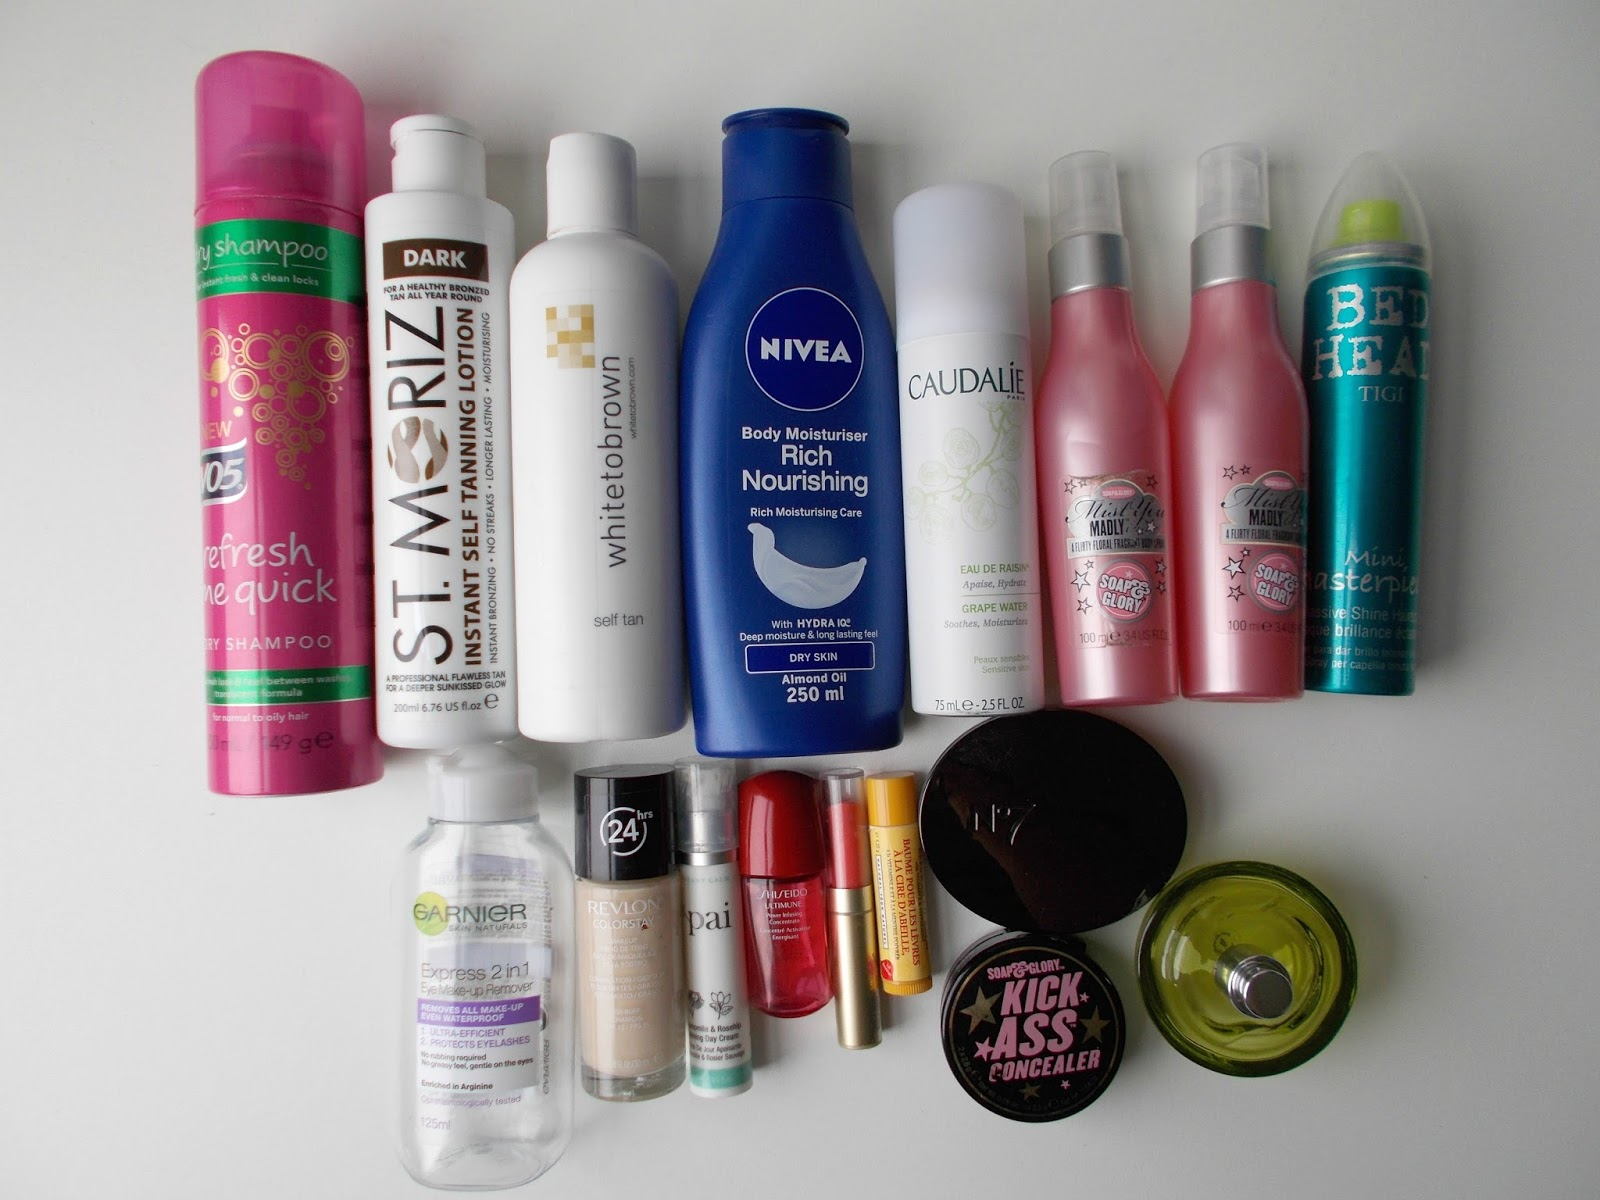 product empties st moriz nivea white to brown soap and glory burt's bees dkny caudalie